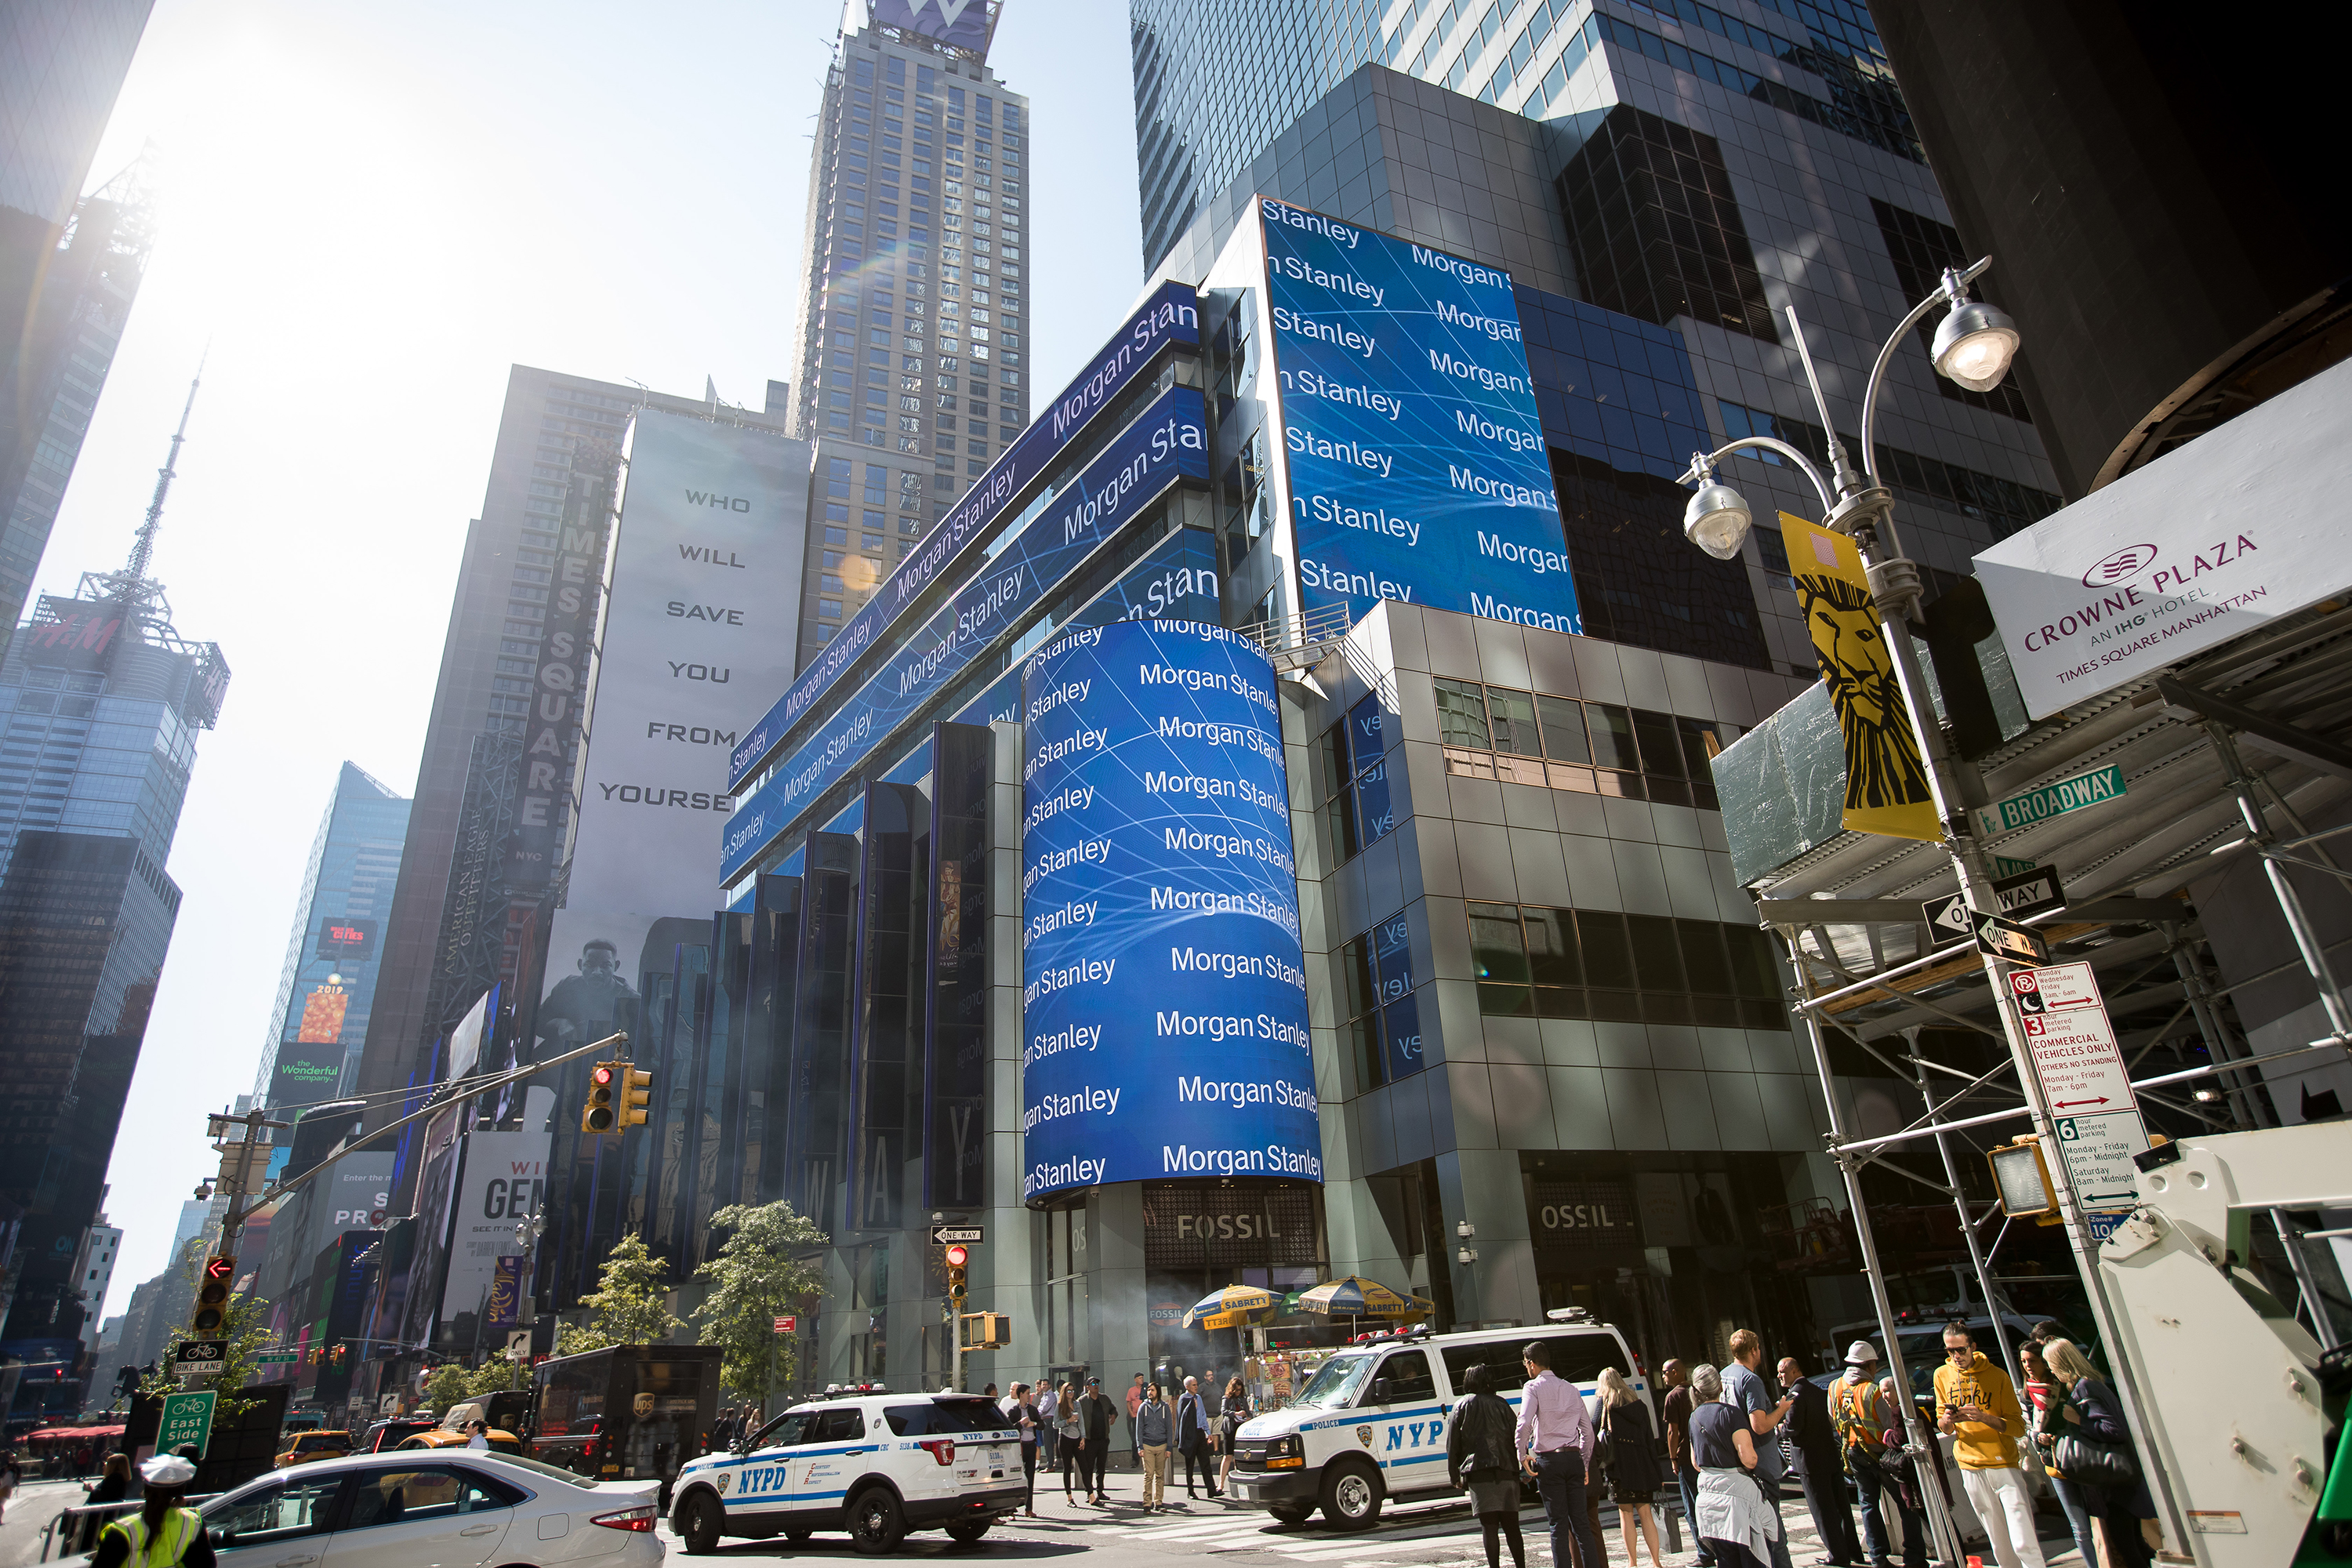 Morgan Stanley's New York office bans unvaccinated staff and clients